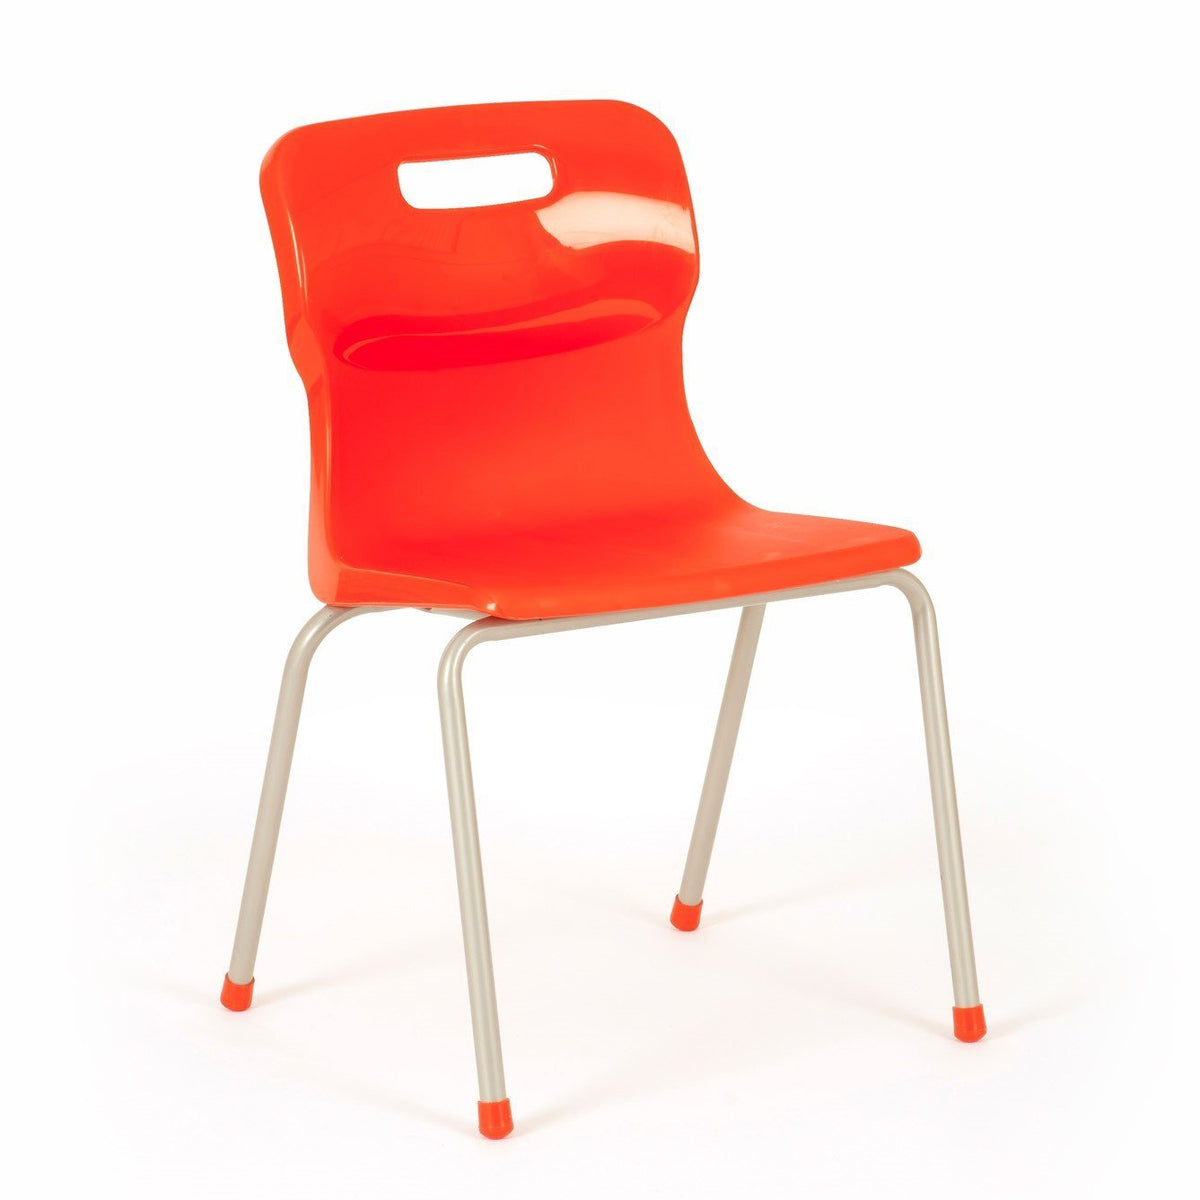 classroom chairs Size 3 - Seat Height 350 mm Titan 4-Leg Classroom Chair Size 3 - Seat Height 350 mm